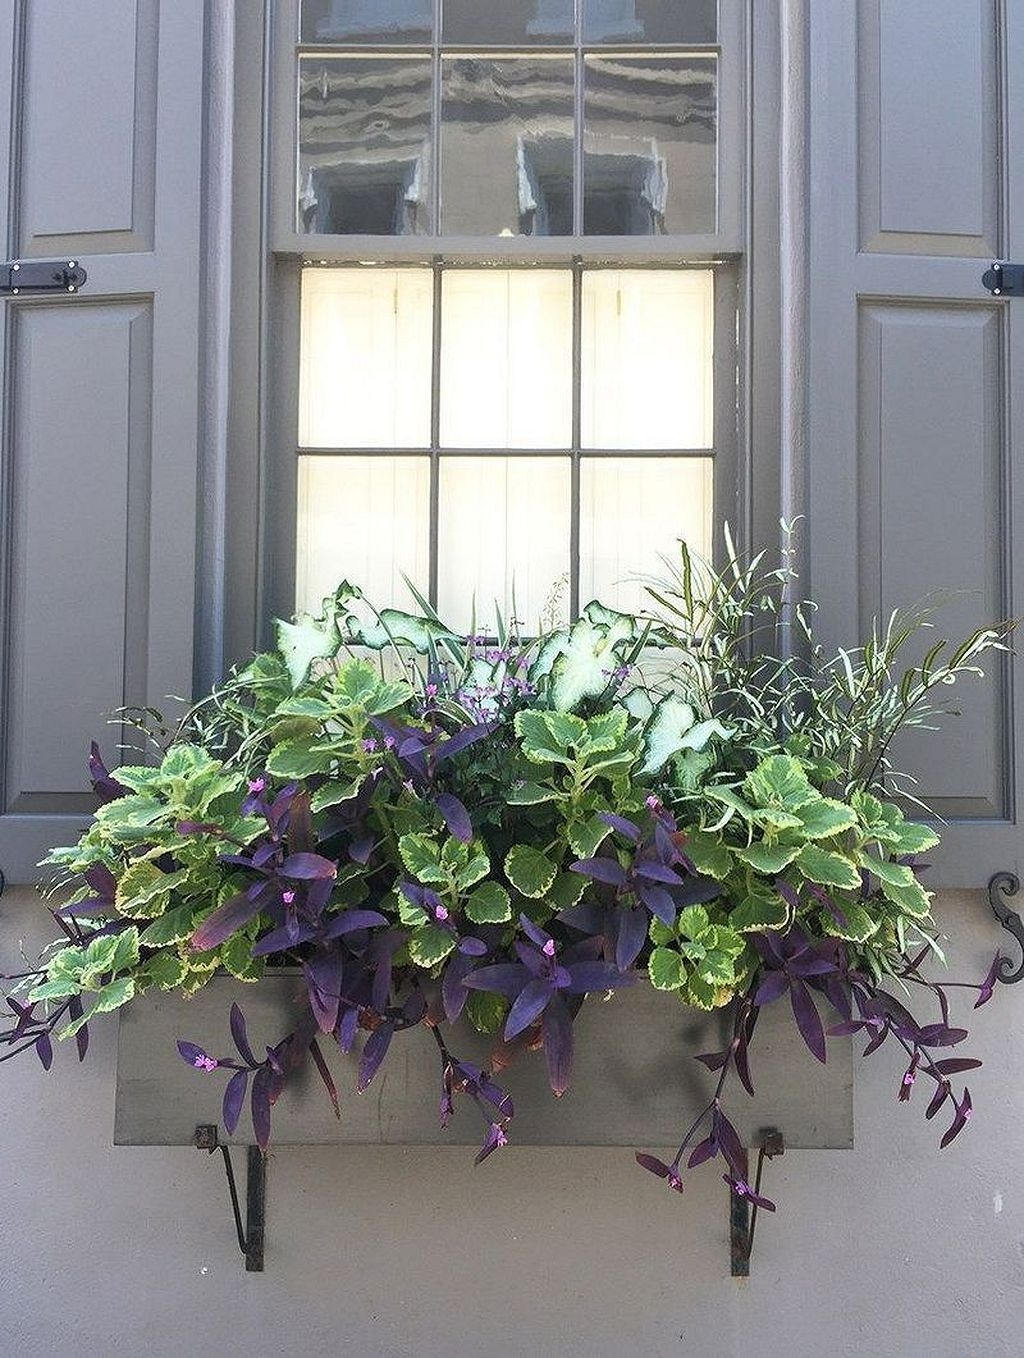 Wonderful Flower In Pots Ideas For Your Window30